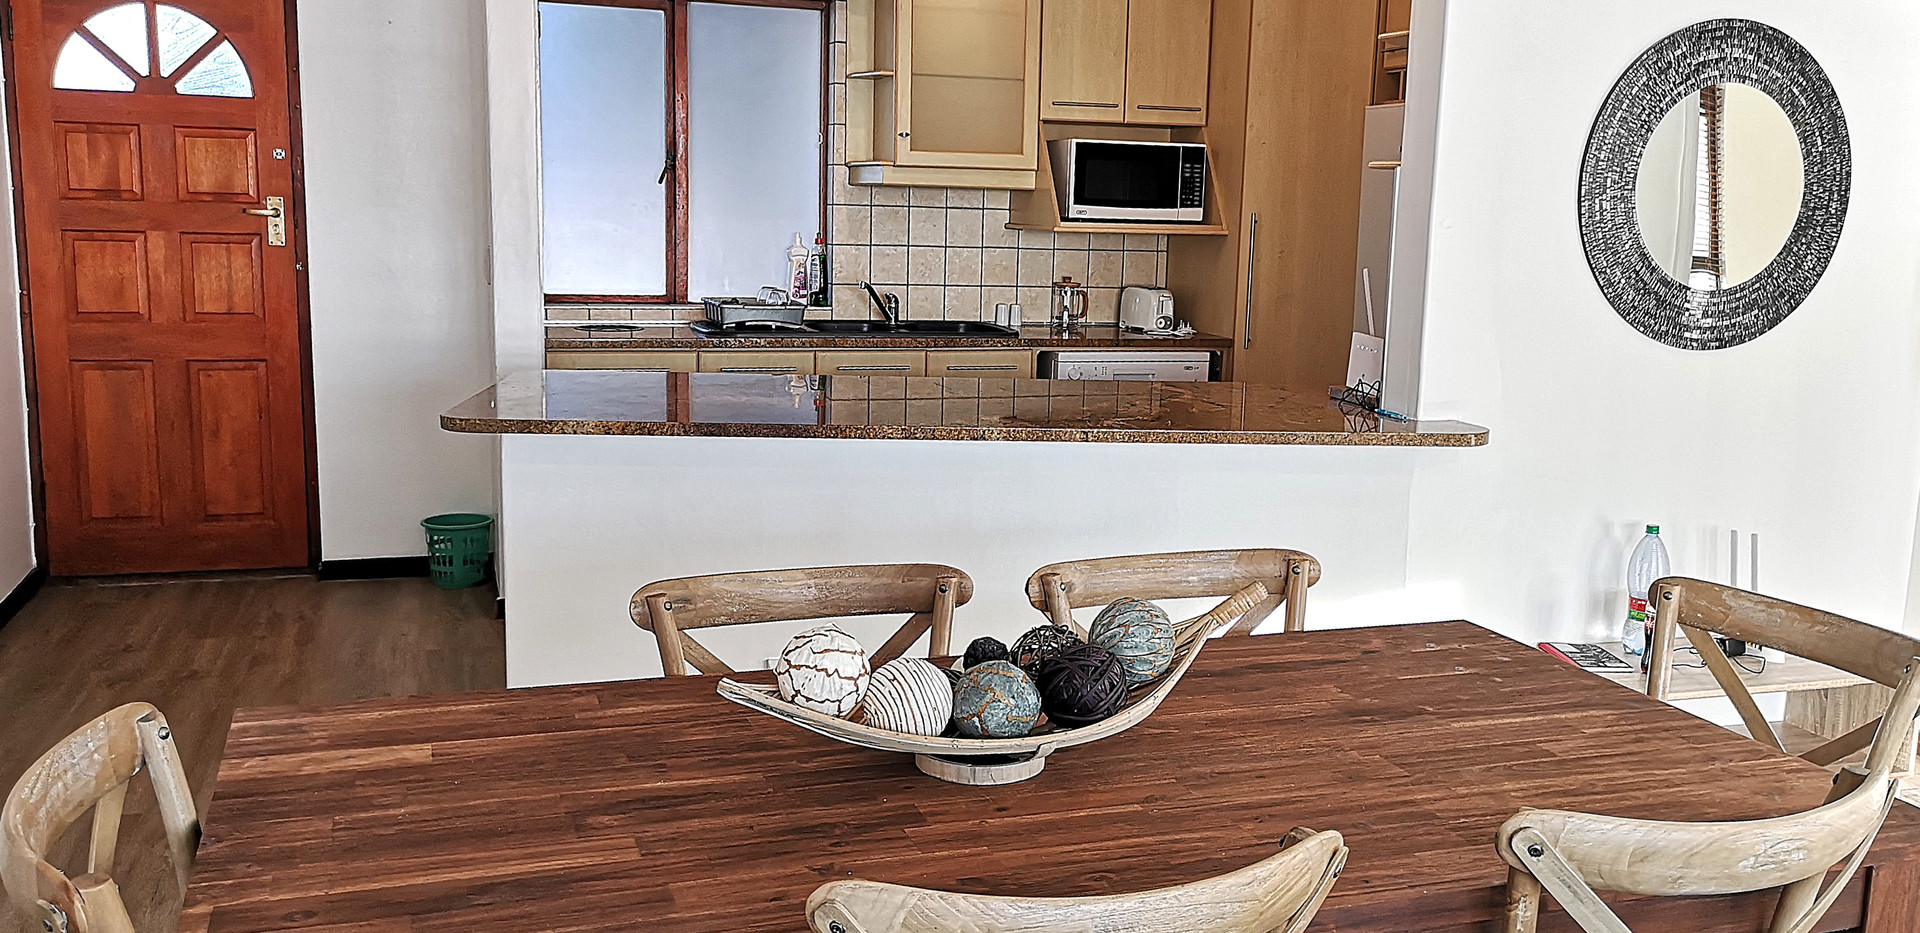 Witsand 806 Dining and Kitchen copy.jpg